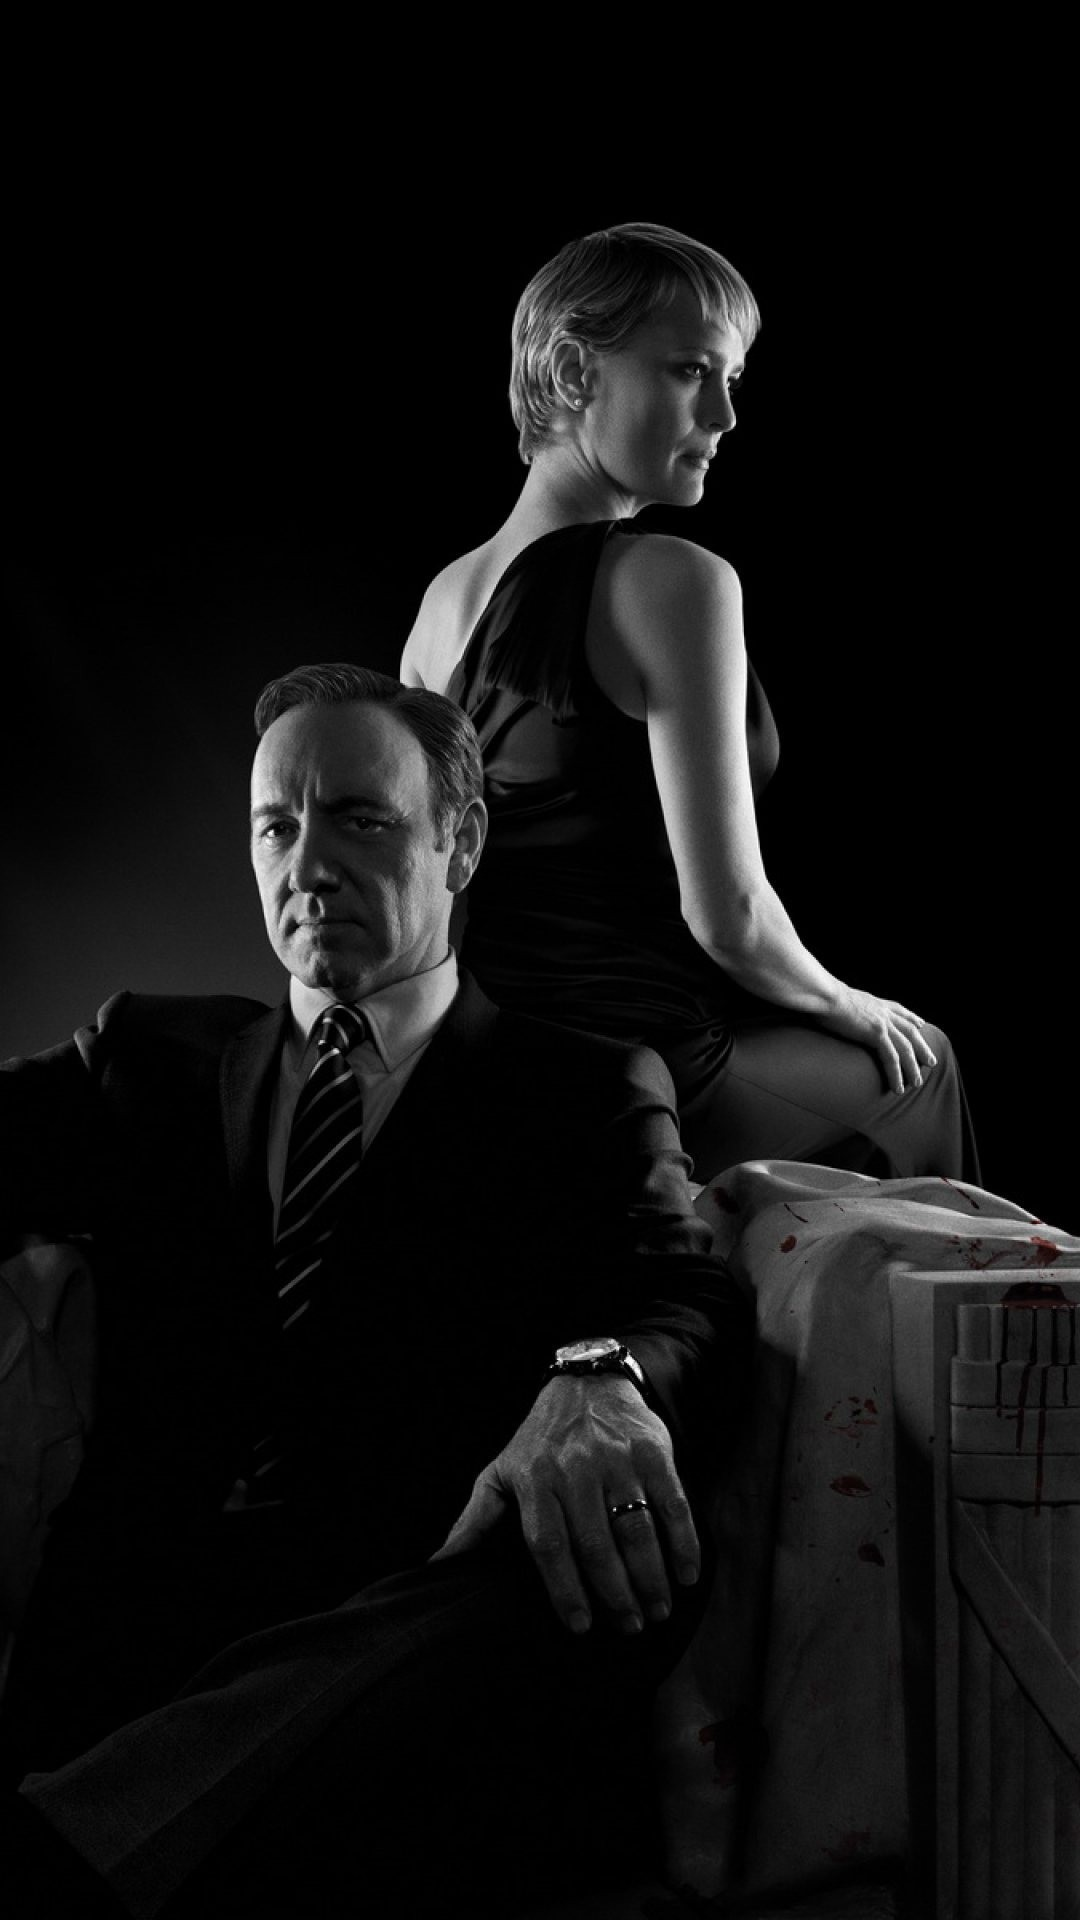 House Of Cards Hd Wallpapers For Iphone 7 Wallpapers Pictures